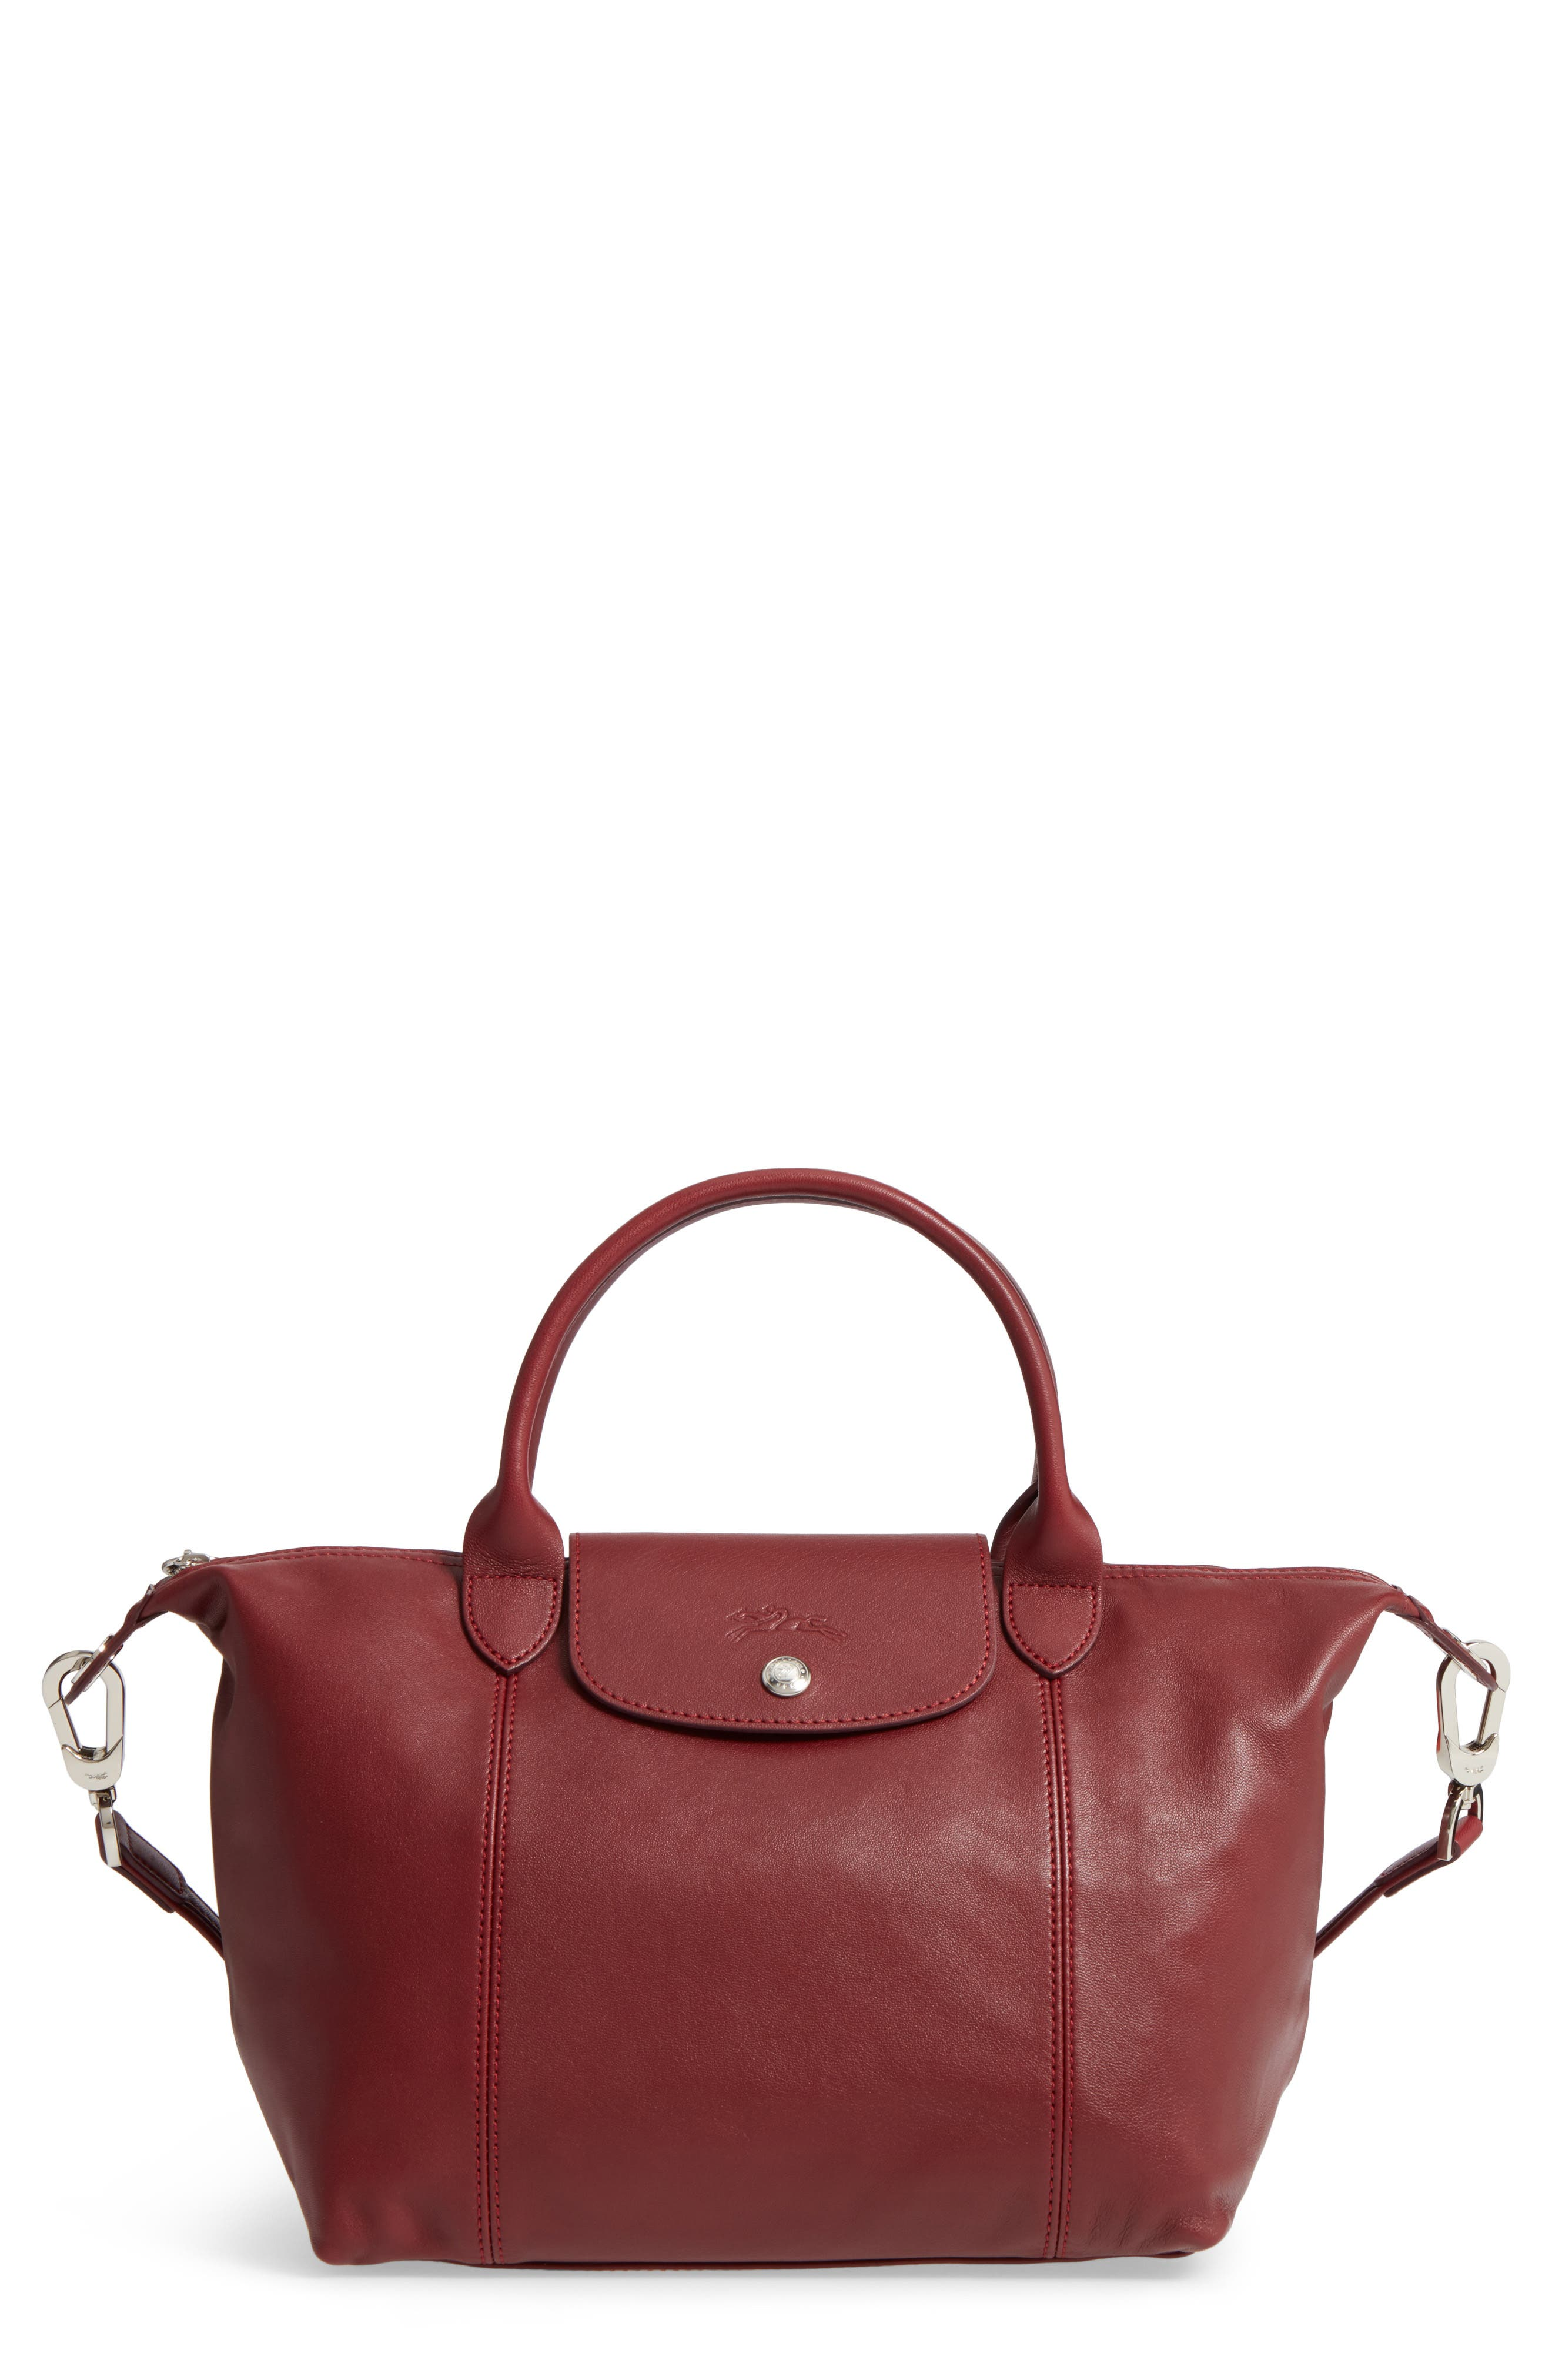 Small 'Le Pliage Cuir' Leather Top Handle Tote,                             Main thumbnail 19, color,